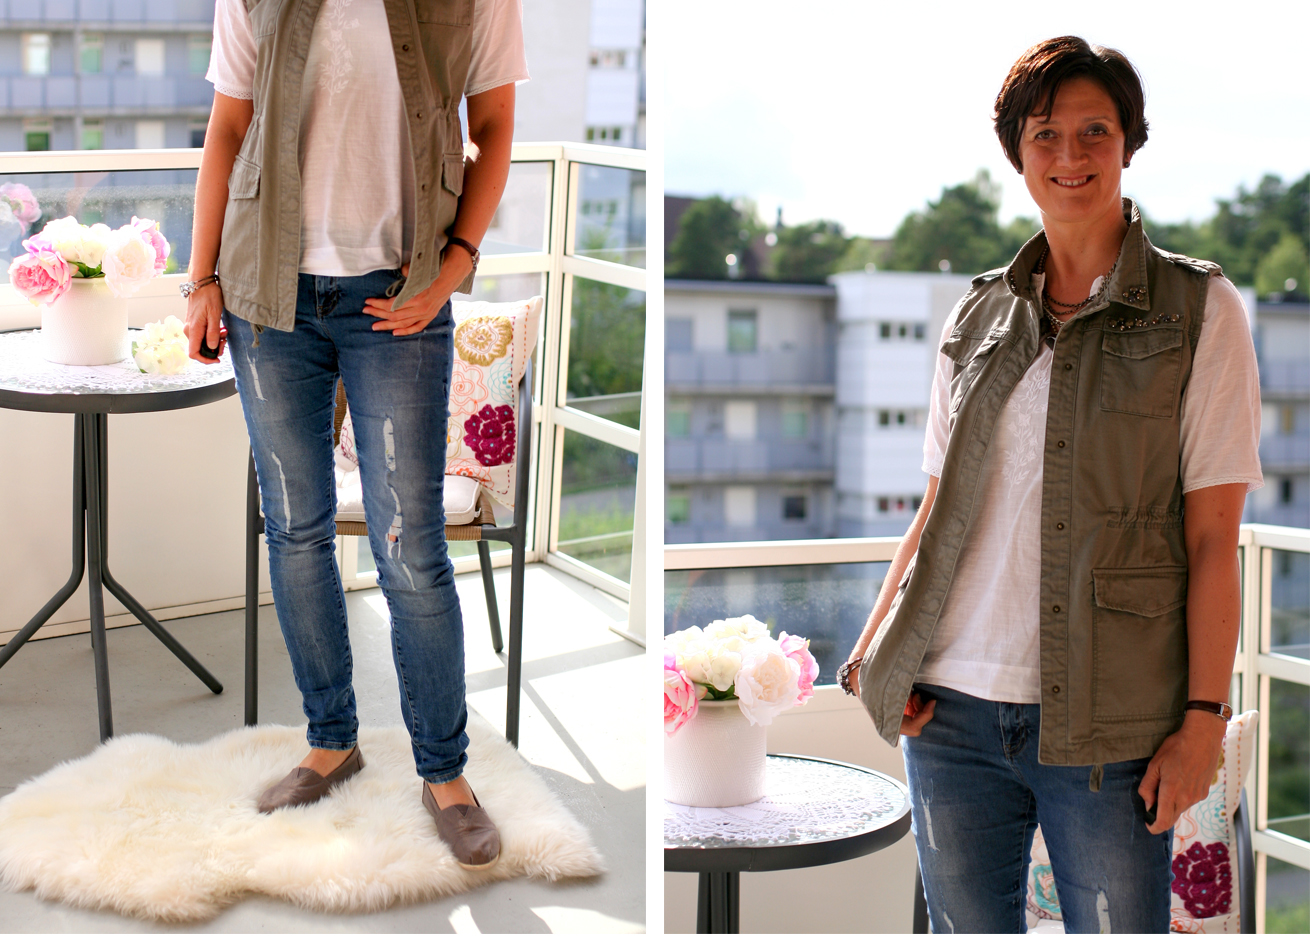 Tall Girl's Fashion // Lace top and distressed jeans